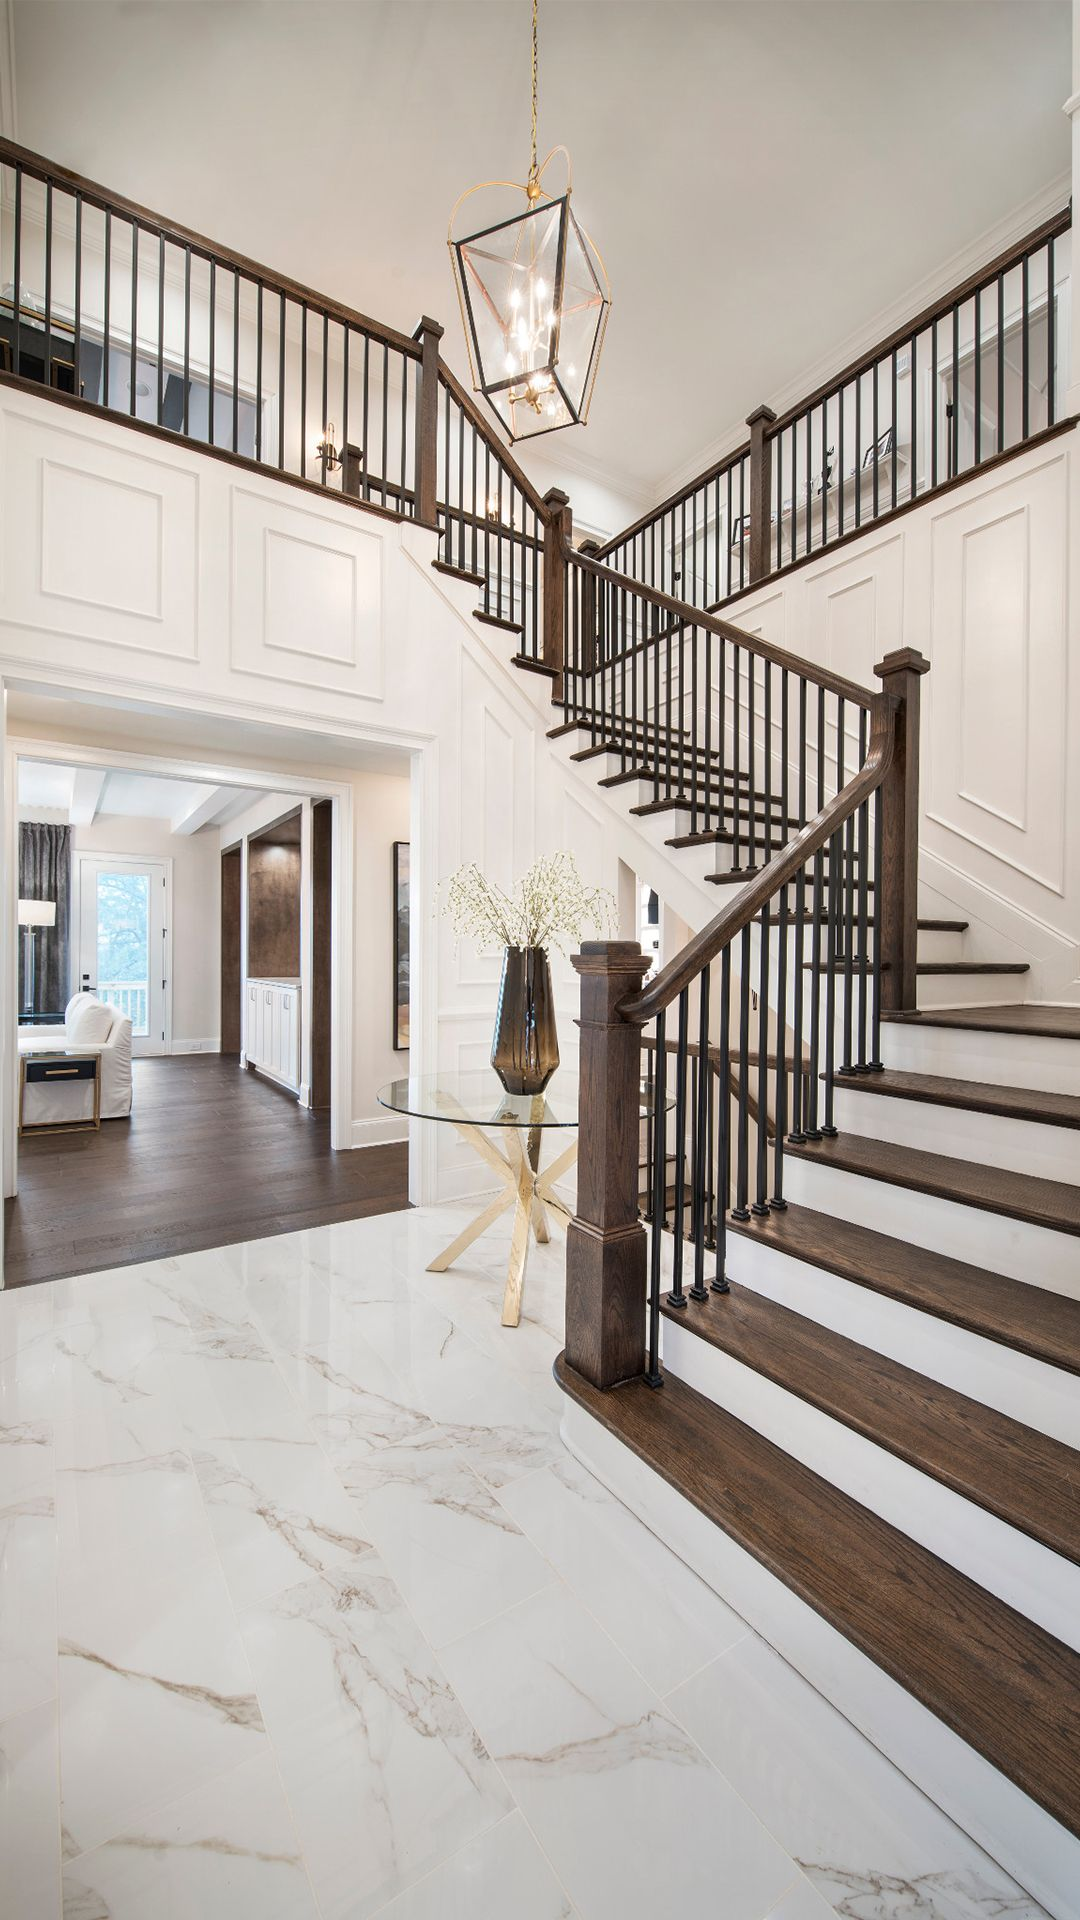 InteriorInspo   House entrance, House stairs, Dream house